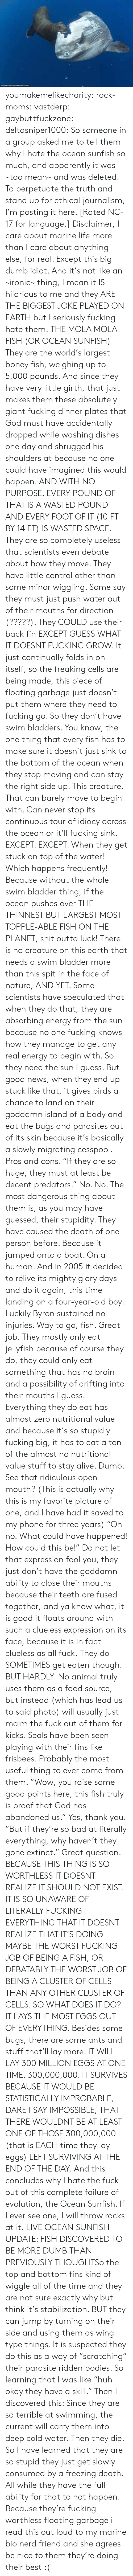 "Largest: ORihad Herrma M  S youmakemelikecharity:  rock-moms:  vastderp:  gaybuttfuckzone:  deltasniper1000:  So someone in a group asked me to tell them why I hate the ocean sunfish so much, and apparently it was ~too mean~ and was deleted. To perpetuate the truth and stand up for ethical journalism, I'm posting it here. [Rated NC-17 for language.]  Disclaimer, I care about marine life more than I care about anything else, for real. Except this big dumb idiot. And it's not like an ~ironic~ thing, I mean it IS hilarious to me and they ARE THE BIGGEST JOKE PLAYED ON EARTH but I seriously fucking hate them.  THE MOLA MOLA FISH (OR OCEAN SUNFISH)  They are the world's largest boney fish, weighing up to 5,000 pounds. And since they have very little girth, that just makes them these absolutely giant fucking dinner plates that God must have accidentally dropped while washing dishes one day and shrugged his shoulders at because no one could have imagined this would happen. AND WITH NO PURPOSE. EVERY POUND OF THAT IS A WASTED POUND AND EVERY FOOT OF IT (10 FT BY 14 FT) IS WASTED SPACE.  They are so completely useless that scientists even debate about how they move. They have little control other than some minor wiggling. Some say they must just push water out of their mouths for direction (?????). They COULD use their back fin EXCEPT GUESS WHAT IT DOESNT FUCKING GROW. It just continually folds in on itself, so the freaking cells are being made, this piece of floating garbage just doesn't put them where they need to fucking go.   So they don't have swim bladders. You know, the one thing that every fish has to make sure it doesn't just sink to the bottom of the ocean when they stop moving and can stay the right side up. This creature. That can barely move to begin with. Can never stop its continuous tour of idiocy across the ocean or it'll fucking sink. EXCEPT. EXCEPT. When they get stuck on top of the water! Which happens frequently! Because without the whole swim bladder thing, if the ocean pushes over THE THINNEST BUT LARGEST MOST TOPPLE-ABLE FISH ON THE PLANET, shit outta luck! There is no creature on this earth that needs a swim bladder more than this spit in the face of nature, AND YET. Some scientists have speculated that when they do that, they are absorbing energy from the sun because no one fucking knows how they manage to get any real energy to begin with. So they need the sun I guess. But good news, when they end up stuck like that, it gives birds a chance to land on their goddamn island of a body and eat the bugs and parasites out of its skin because it's basically a slowly migrating cesspool. Pros and cons.   ""If they are so huge, they must at least be decent predators."" No. No. The most dangerous thing about them is, as you may have guessed, their stupidity. They have caused the death of one person before. Because it jumped onto a boat. On a human. And in 2005 it decided to relive its mighty glory days and do it again, this time landing on a four-year-old boy. Luckily Byron sustained no injuries. Way to go, fish. Great job.  They mostly only eat jellyfish because of course they do, they could only eat something that has no brain and a possibility of drifting into their mouths I guess. Everything they do eat has almost zero nutritional value and because it's so stupidly fucking big, it has to eat a ton of the almost no nutritional value stuff to stay alive. Dumb. See that ridiculous open mouth? (This is actually why this is my favorite picture of one, and I have had it saved to my phone for three years) ""Oh no! What could have happened! How could this be!"" Do not let that expression fool you, they just don't have the goddamn ability to close their mouths because their teeth are fused together, and ya know what, it is good it floats around with such a clueless expression on its face, because it is in fact clueless as all fuck.  They do SOMETIMES get eaten though. BUT HARDLY. No animal truly uses them as a food source, but instead (which has lead us to said photo) will usually just maim the fuck out of them for kicks. Seals have been seen playing with their fins like frisbees. Probably the most useful thing to ever come from them.   ""Wow, you raise some good points here, this fish truly is proof that God has abandoned us."" Yes, thank you. ""But if they're so bad at literally everything, why haven't they gone extinct."" Great question.   BECAUSE THIS THING IS SO WORTHLESS IT DOESNT REALIZE IT SHOULD NOT EXIST. IT IS SO UNAWARE OF LITERALLY FUCKING EVERYTHING THAT IT DOESNT REALIZE THAT IT'S DOING MAYBE THE WORST FUCKING JOB OF BEING A FISH, OR DEBATABLY THE WORST JOB OF BEING A CLUSTER OF CELLS THAN ANY OTHER CLUSTER OF CELLS. SO WHAT DOES IT DO? IT LAYS THE MOST EGGS OUT OF EVERYTHING. Besides some bugs, there are some ants and stuff that'll lay more. IT WILL LAY 300 MILLION EGGS AT ONE TIME. 300,000,000. IT SURVIVES BECAUSE IT WOULD BE STATISTICALLY IMPROBABLE, DARE I SAY IMPOSSIBLE, THAT THERE WOULDNT BE AT LEAST ONE OF THOSE 300,000,000 (that is EACH time they lay eggs) LEFT SURVIVING AT THE END OF THE DAY.   And this concludes why I hate the fuck out of this complete failure of evolution, the Ocean Sunfish. If I ever see one, I will throw rocks at it.   LIVE OCEAN SUNFISH UPDATE: FISH DISCOVERED TO BE MORE DUMB THAN PREVIOUSLY THOUGHTSo  the top and bottom fins kind of wiggle all of the time and they are not  sure exactly why but think it's stabilization. BUT they can jump by  turning on their side and using them as  wing type things. It is suspected they do this as a way of ""scratching""  their parasite ridden bodies. So learning that I was like ""huh okay they  have a skill."" Then I discovered this: Since they  are so terrible at swimming, the current will carry them into deep cold  water. Then they die. So I have learned that they are so stupid they  just get slowly consumed by a freezing death. All while they have the  full ability for that to not happen. Because they're fucking worthless  floating garbage    i read this out loud to my marine bio nerd friend and she agrees   be nice to them they're doing their best :("